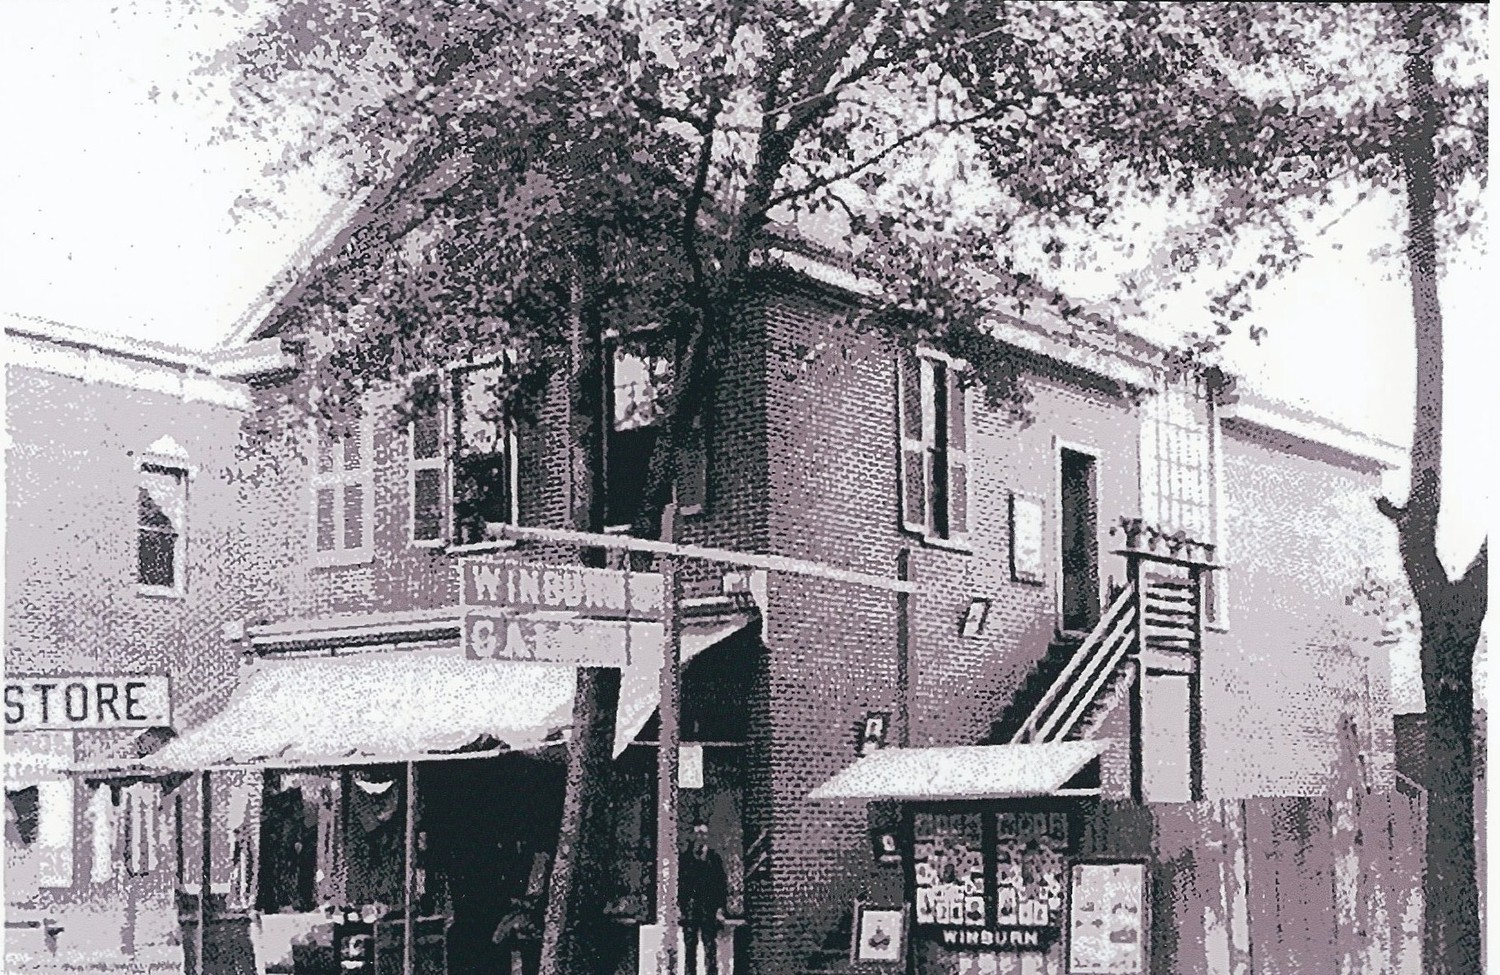 Winburn's Photograph Gallery is seen. J. H. Winburn's gallery chronicled the growth of Sumter.